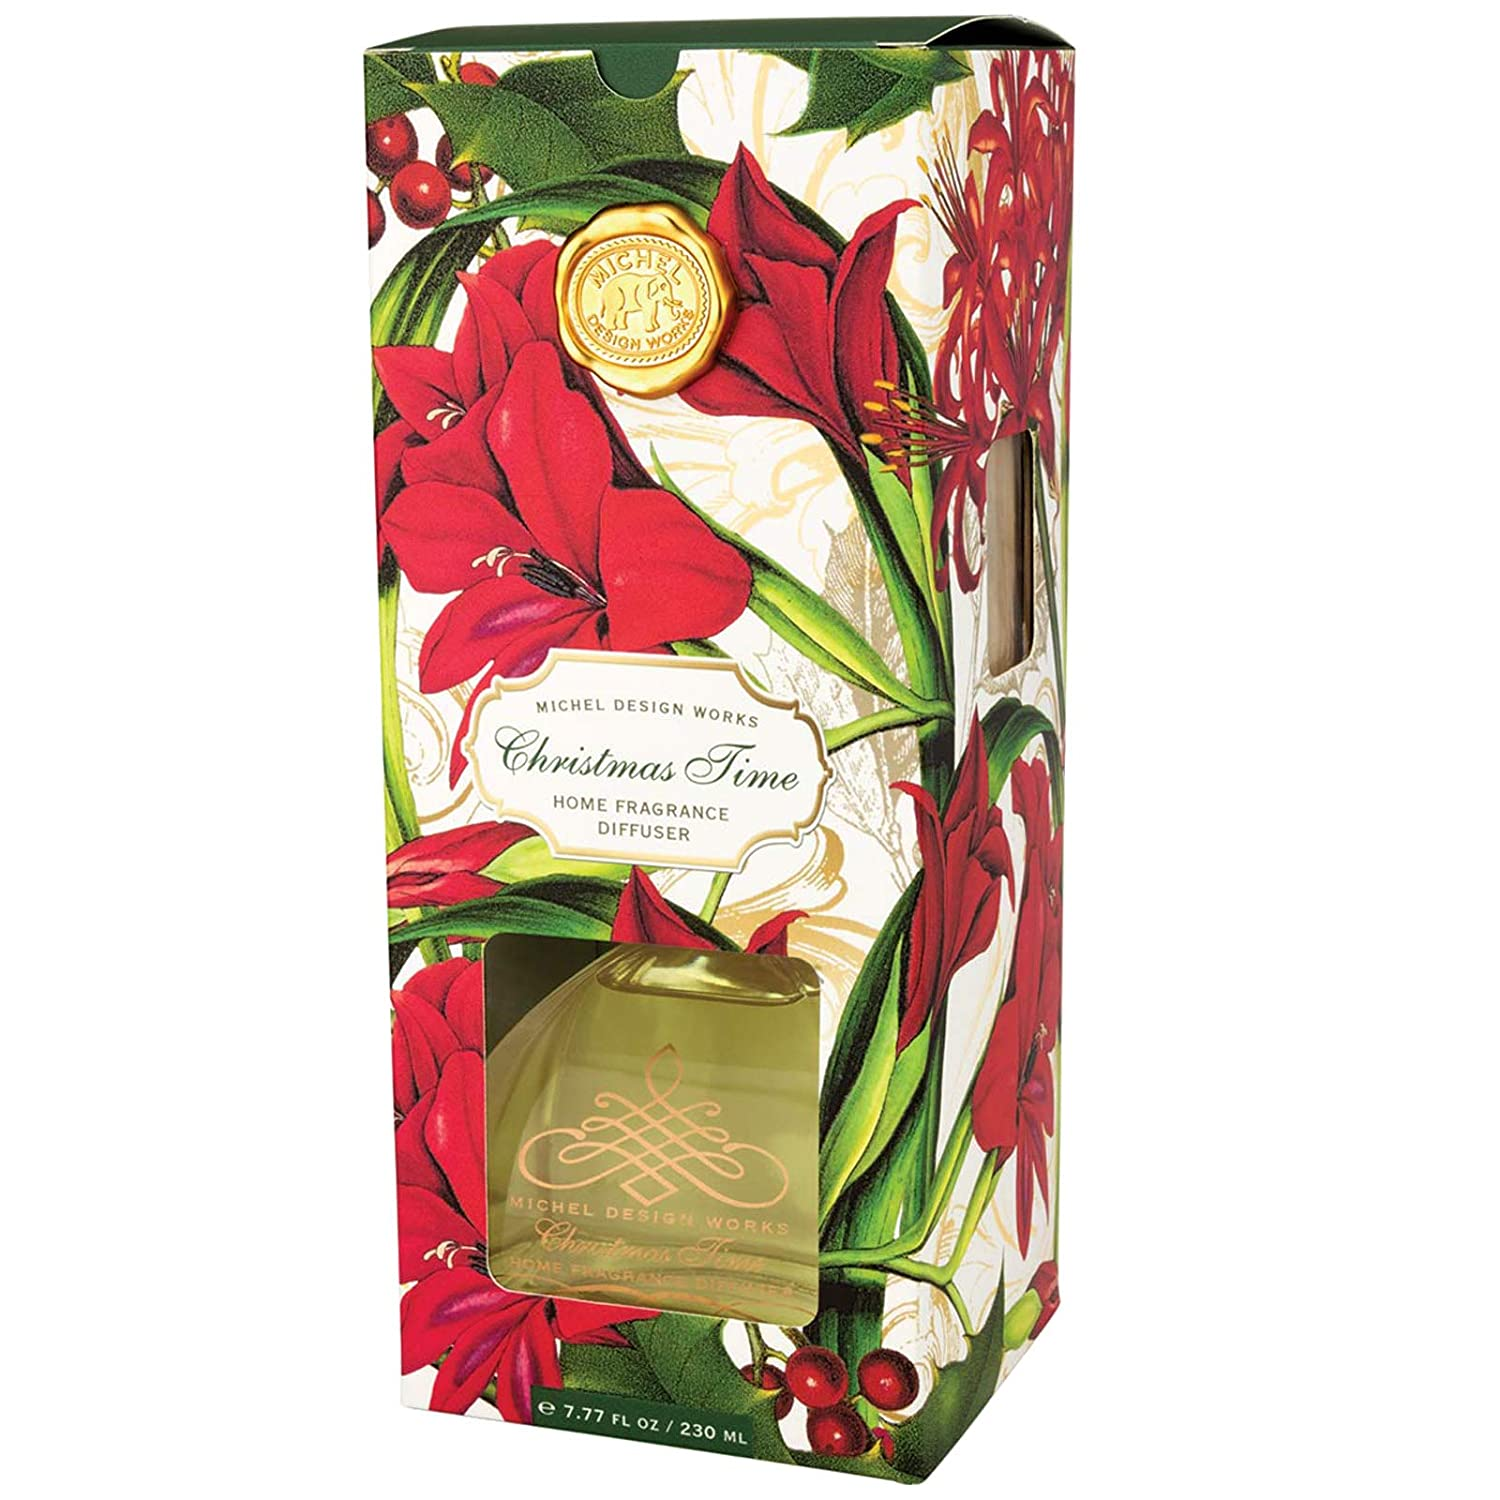 Michel Design Works Fragrance Diffuser Christmas Time Scent Mistletoe Ivy Glass Bottle with Oil and Reeds